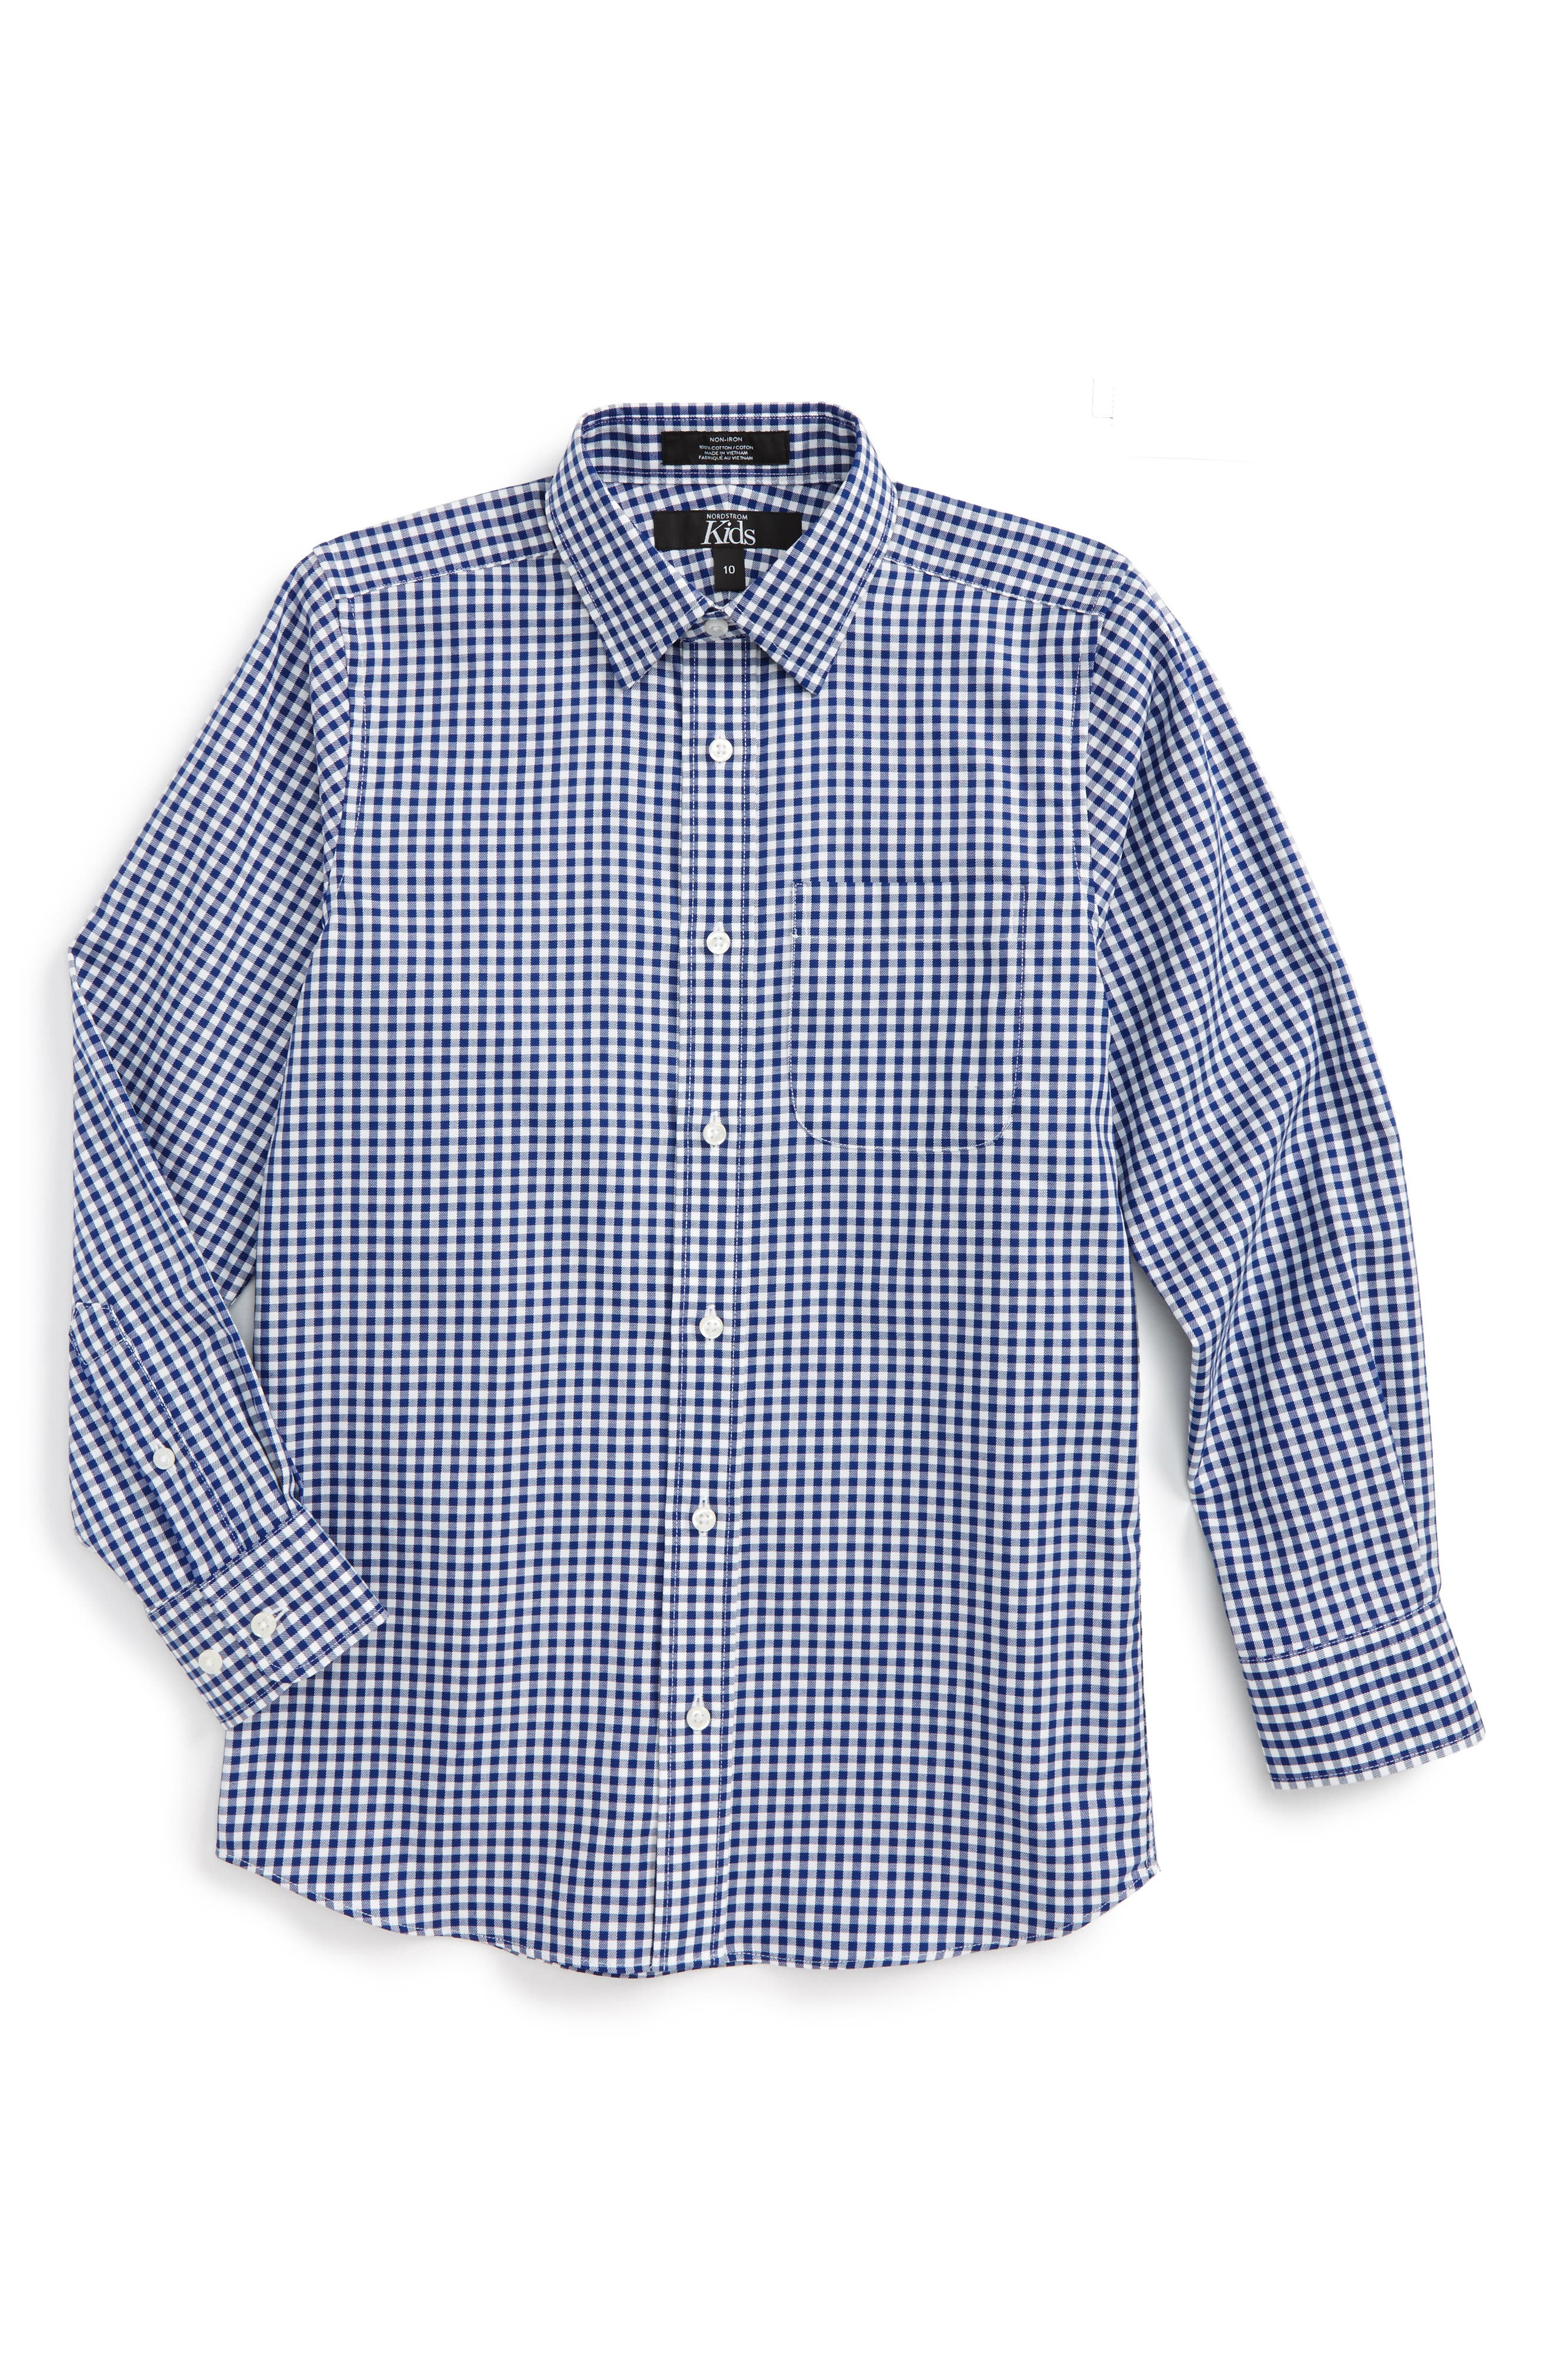 Main Image - Nordstrom Non-Iron Check Dress Shirt (Big Boys)